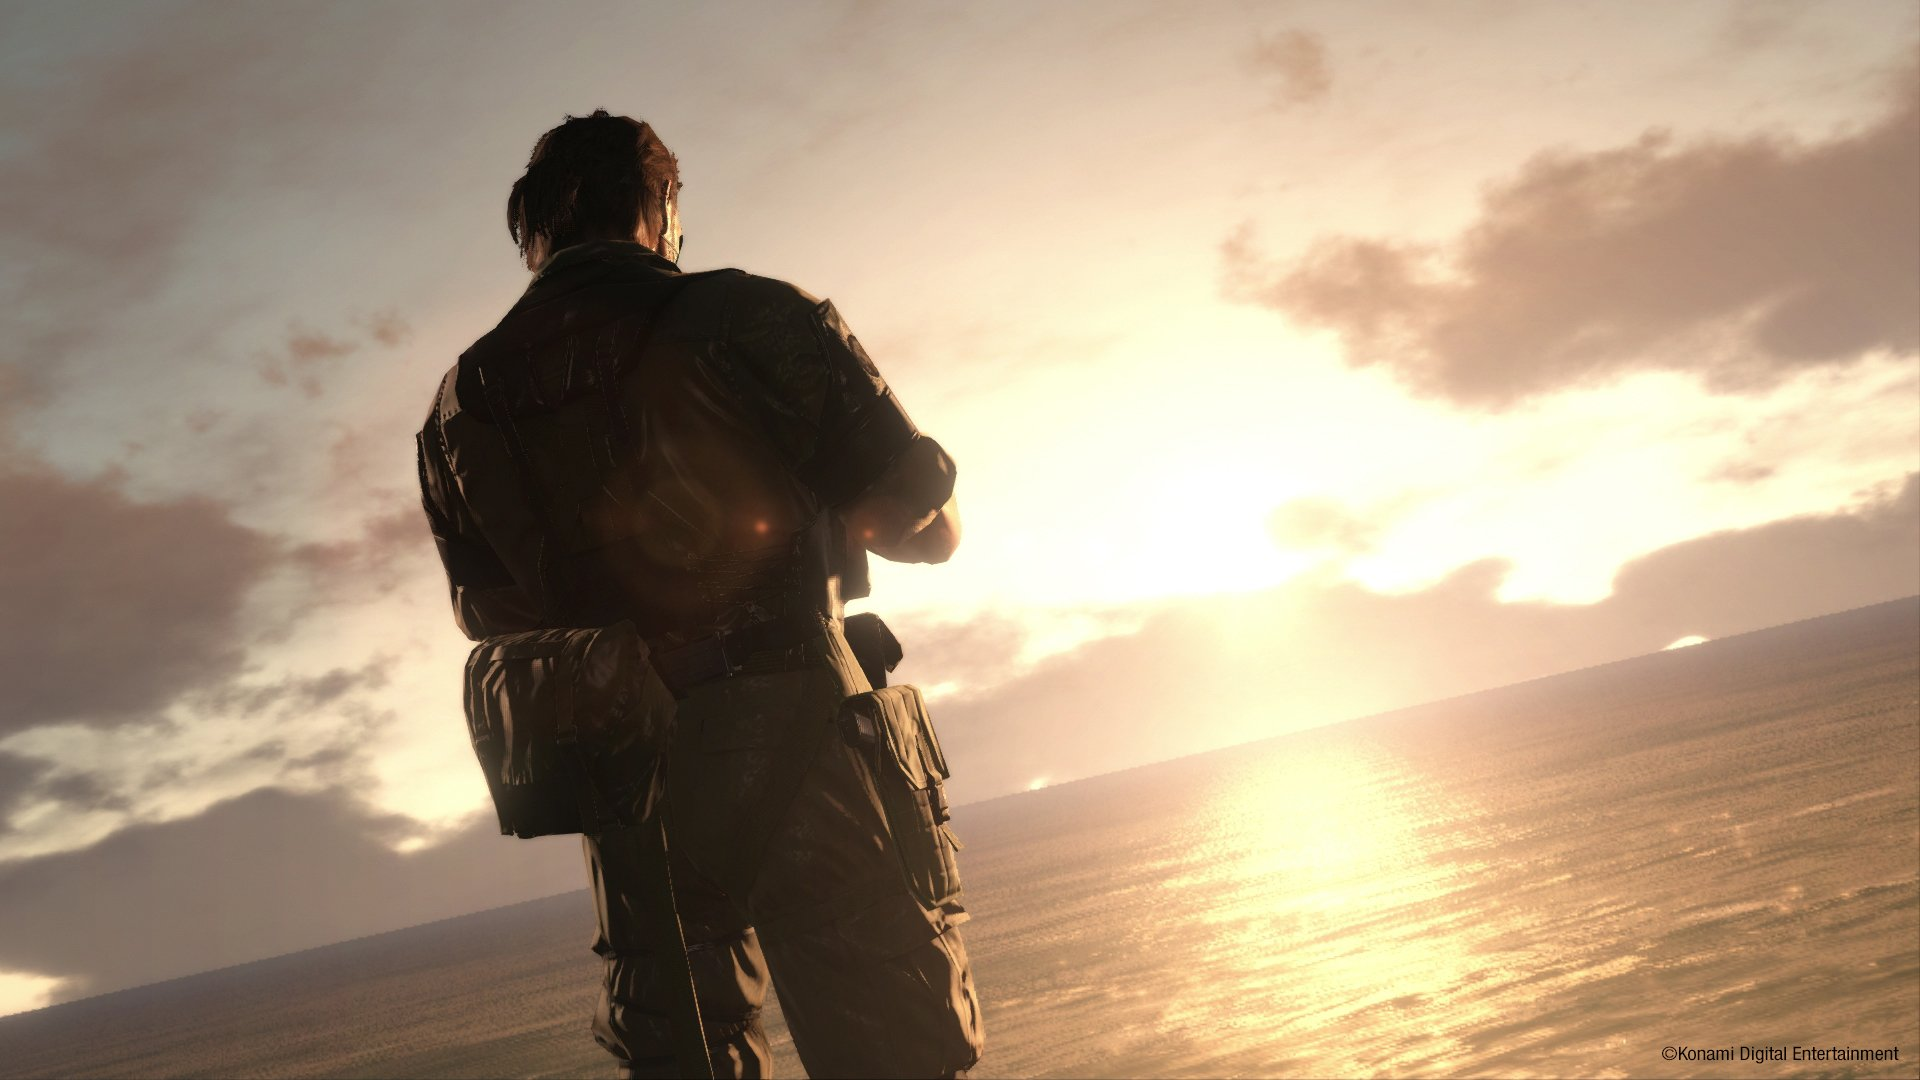 Image du jeu vidéo Metal Gear Solid V: The Phantom Pain avec Big Boss